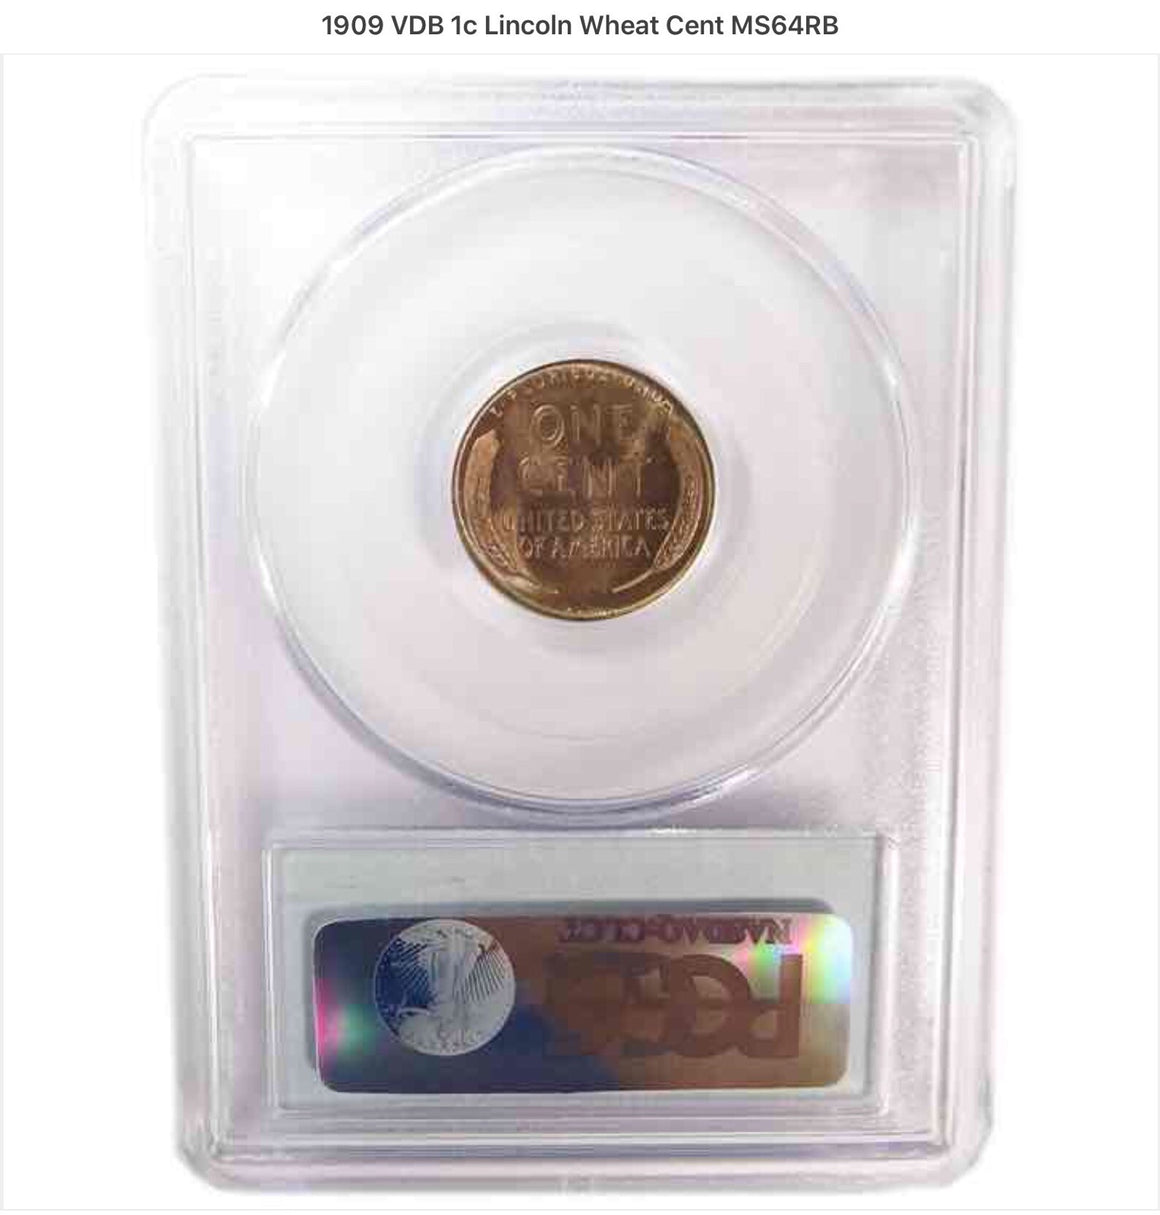 1909 VDB 1c Lincoln Wheat Cent Penny PCGS MS64 RB